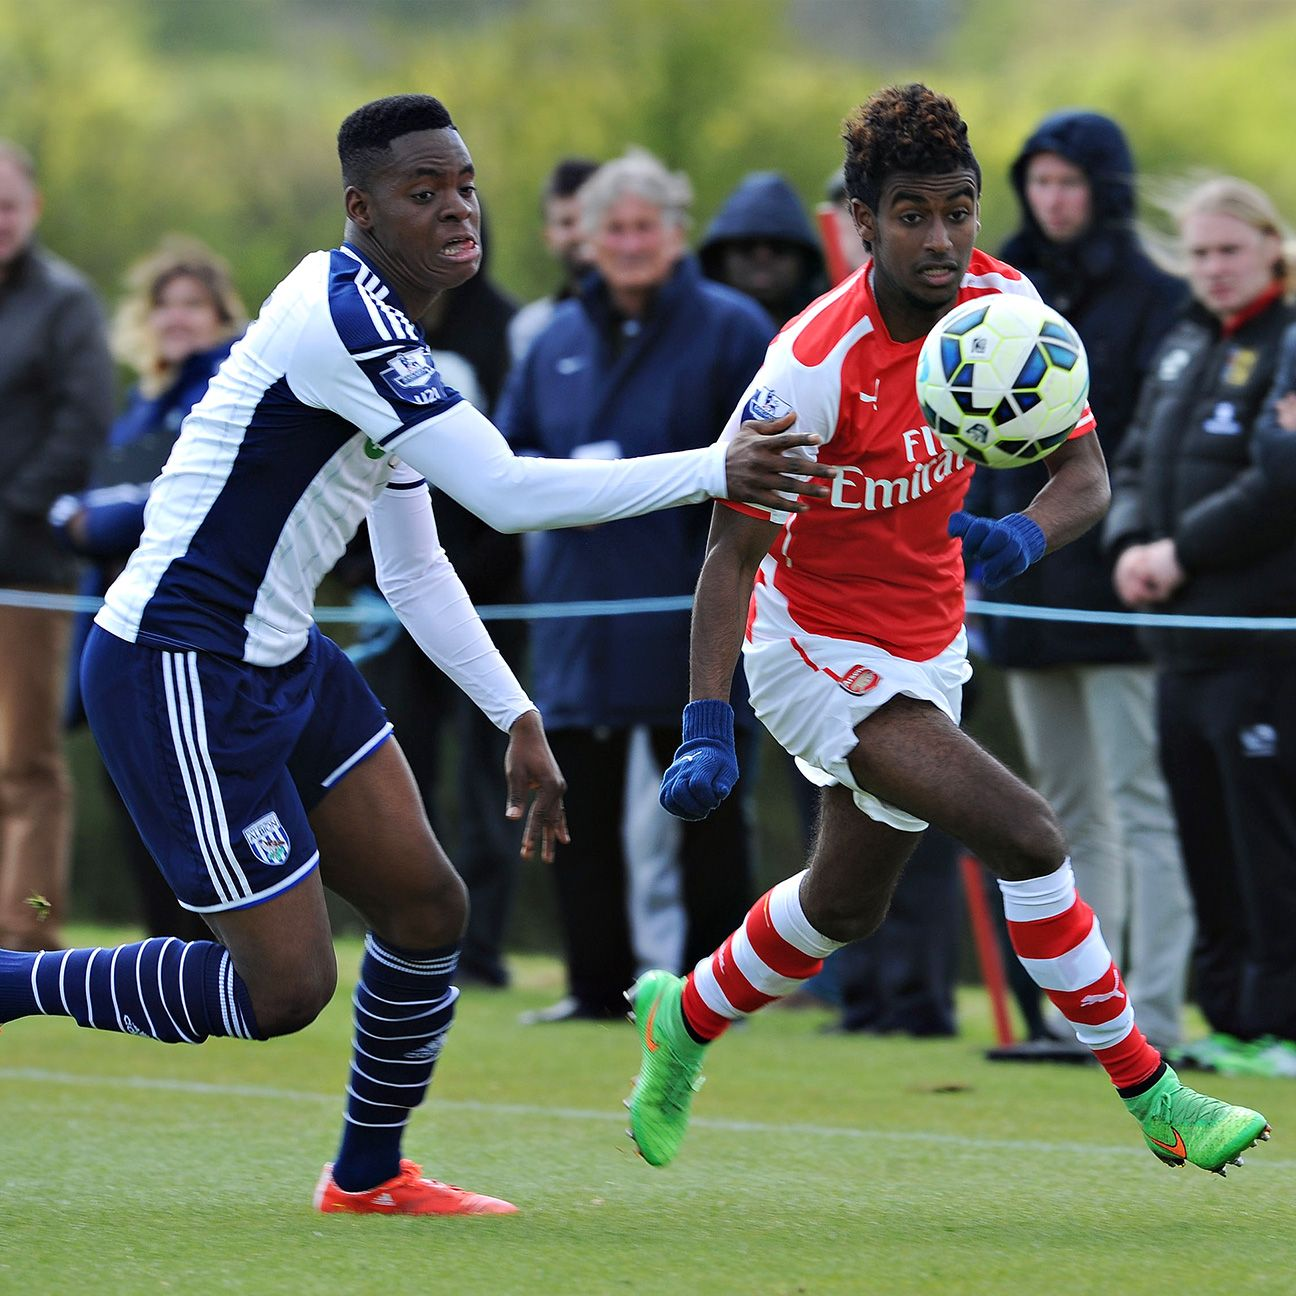 Gideon Zelalem (right) won't be counted on to shoulder a heavy load for the U.S. U-20 team.